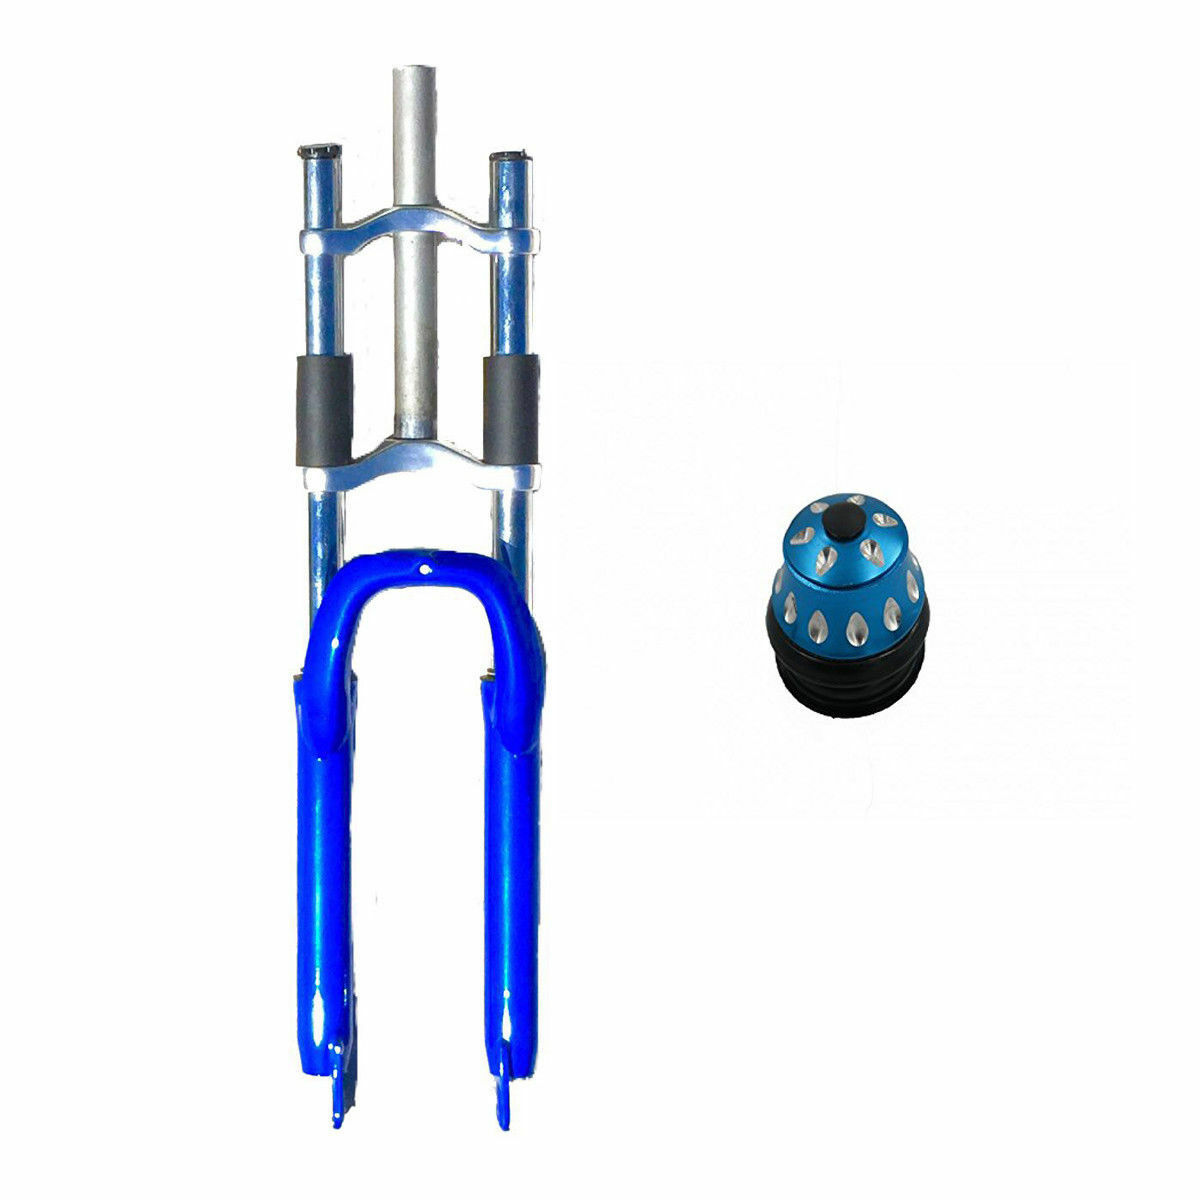 CDHPOWERBicycle bluee fork 26  Combo - triple tree suspension fork and a headset